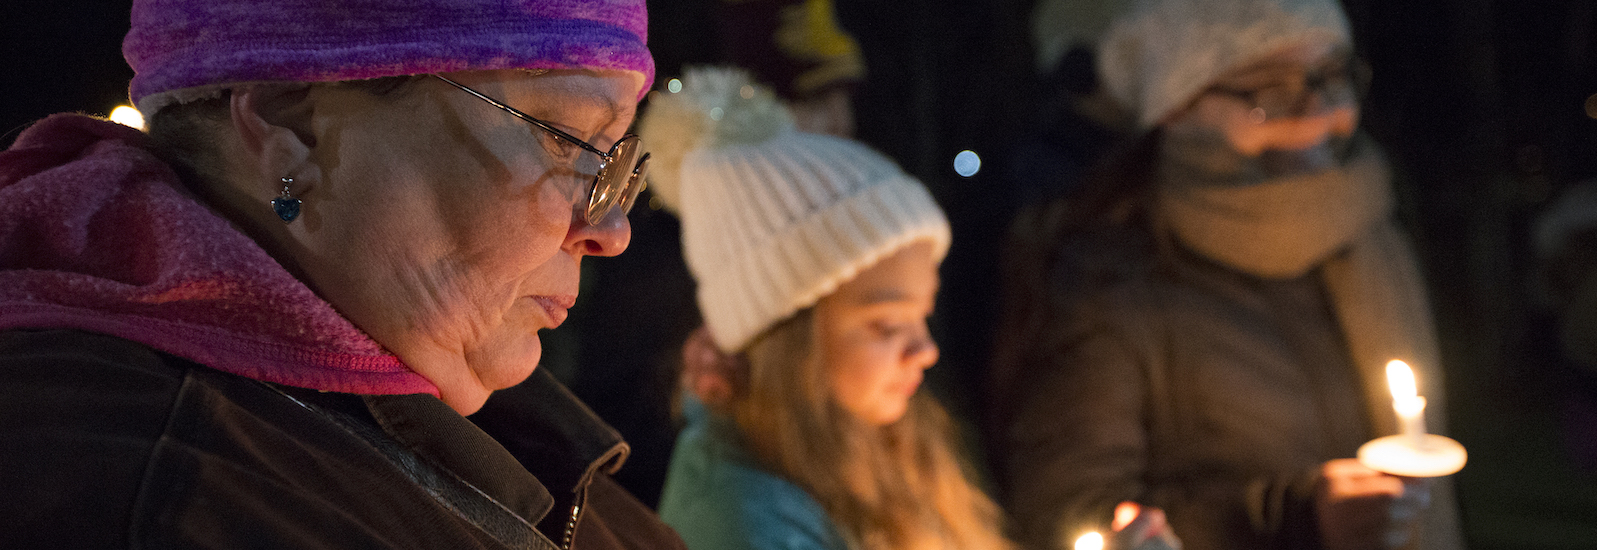 Renee Benner protects her candle from the wind at a homeless awareness event at Central Michigan University on Wednesday, Nov. 15, 2017.